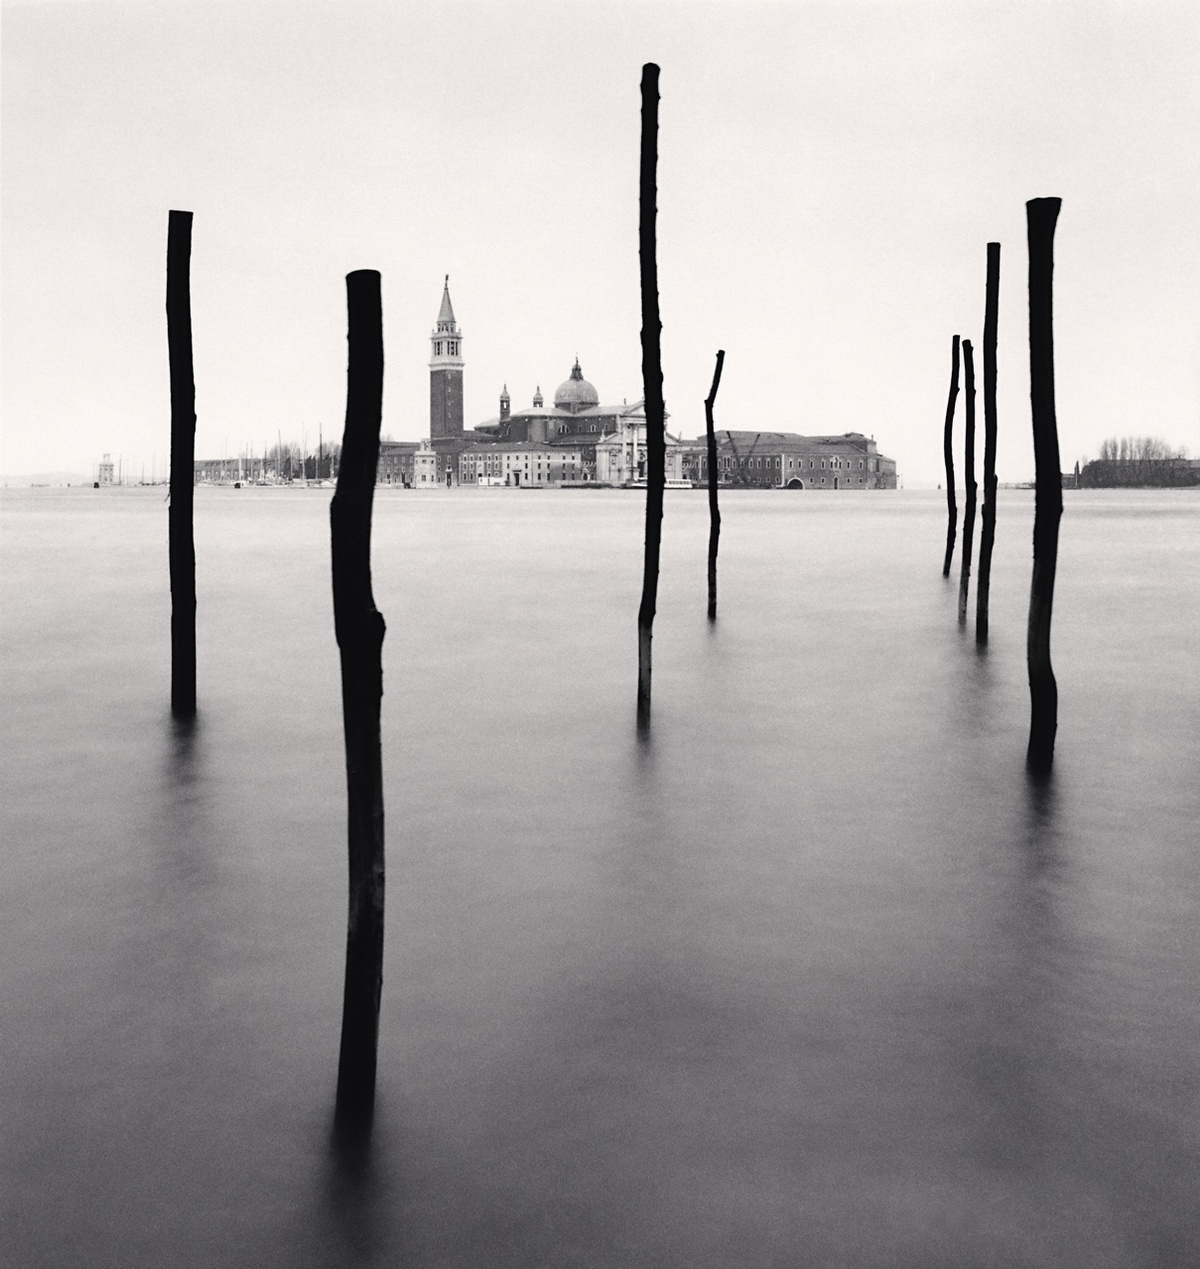 Michael Kenna Basilica and Eight Poles, Venice, Italy 1990 Sepia Toned Silver Gelatin Print From An Edition Of 45 8 x 8 Inches